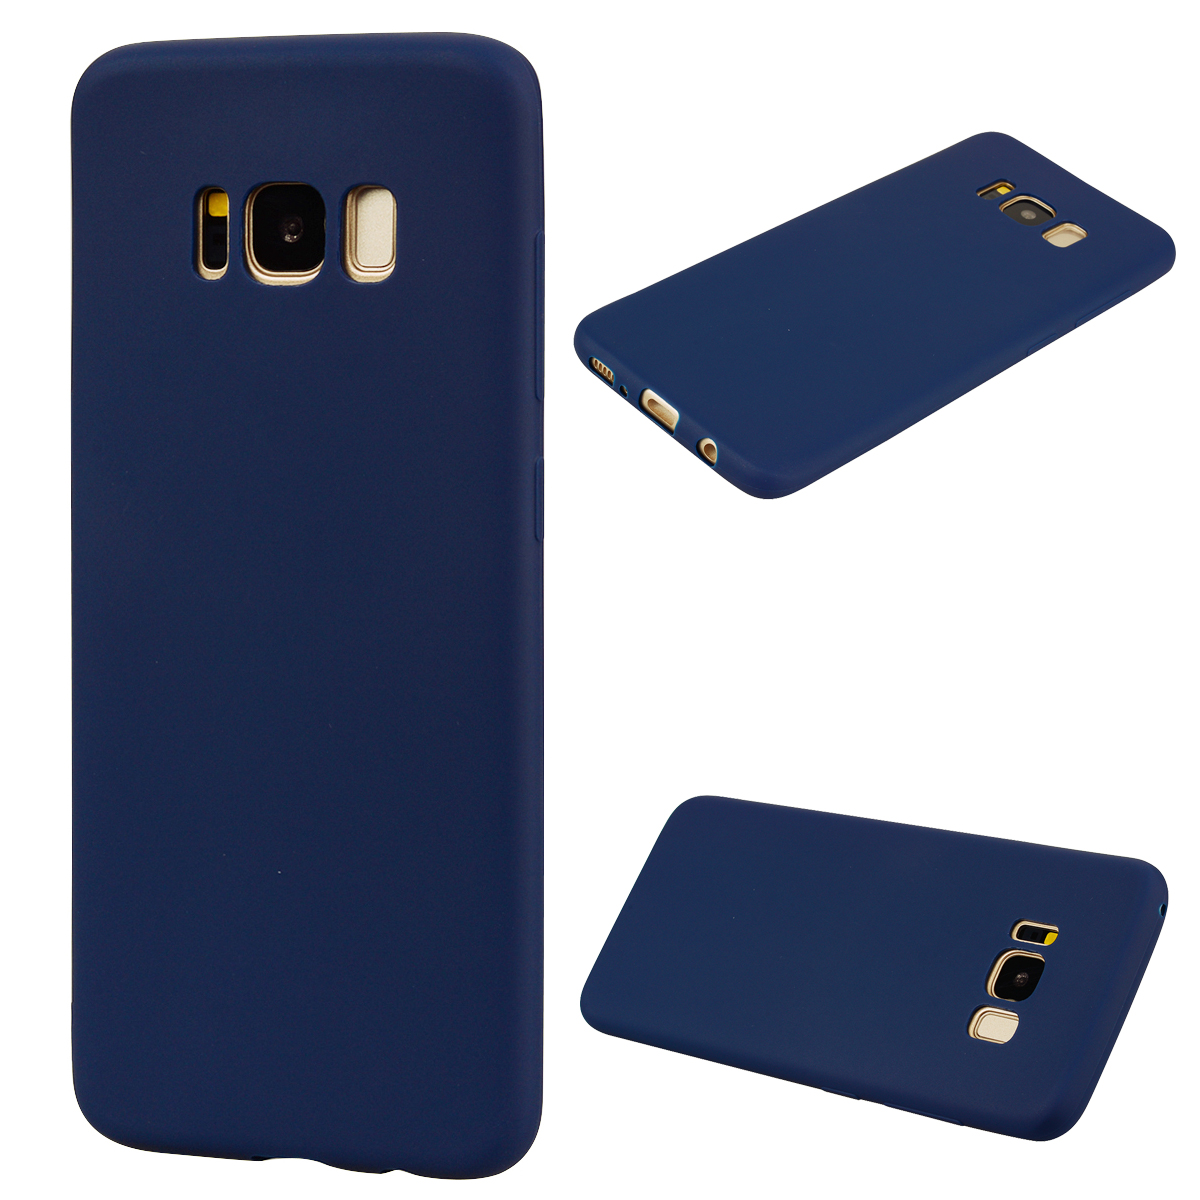 for Samsung S8 plus Lovely Candy Color Matte TPU Anti-scratch Non-slip Protective Cover Back Case Navy